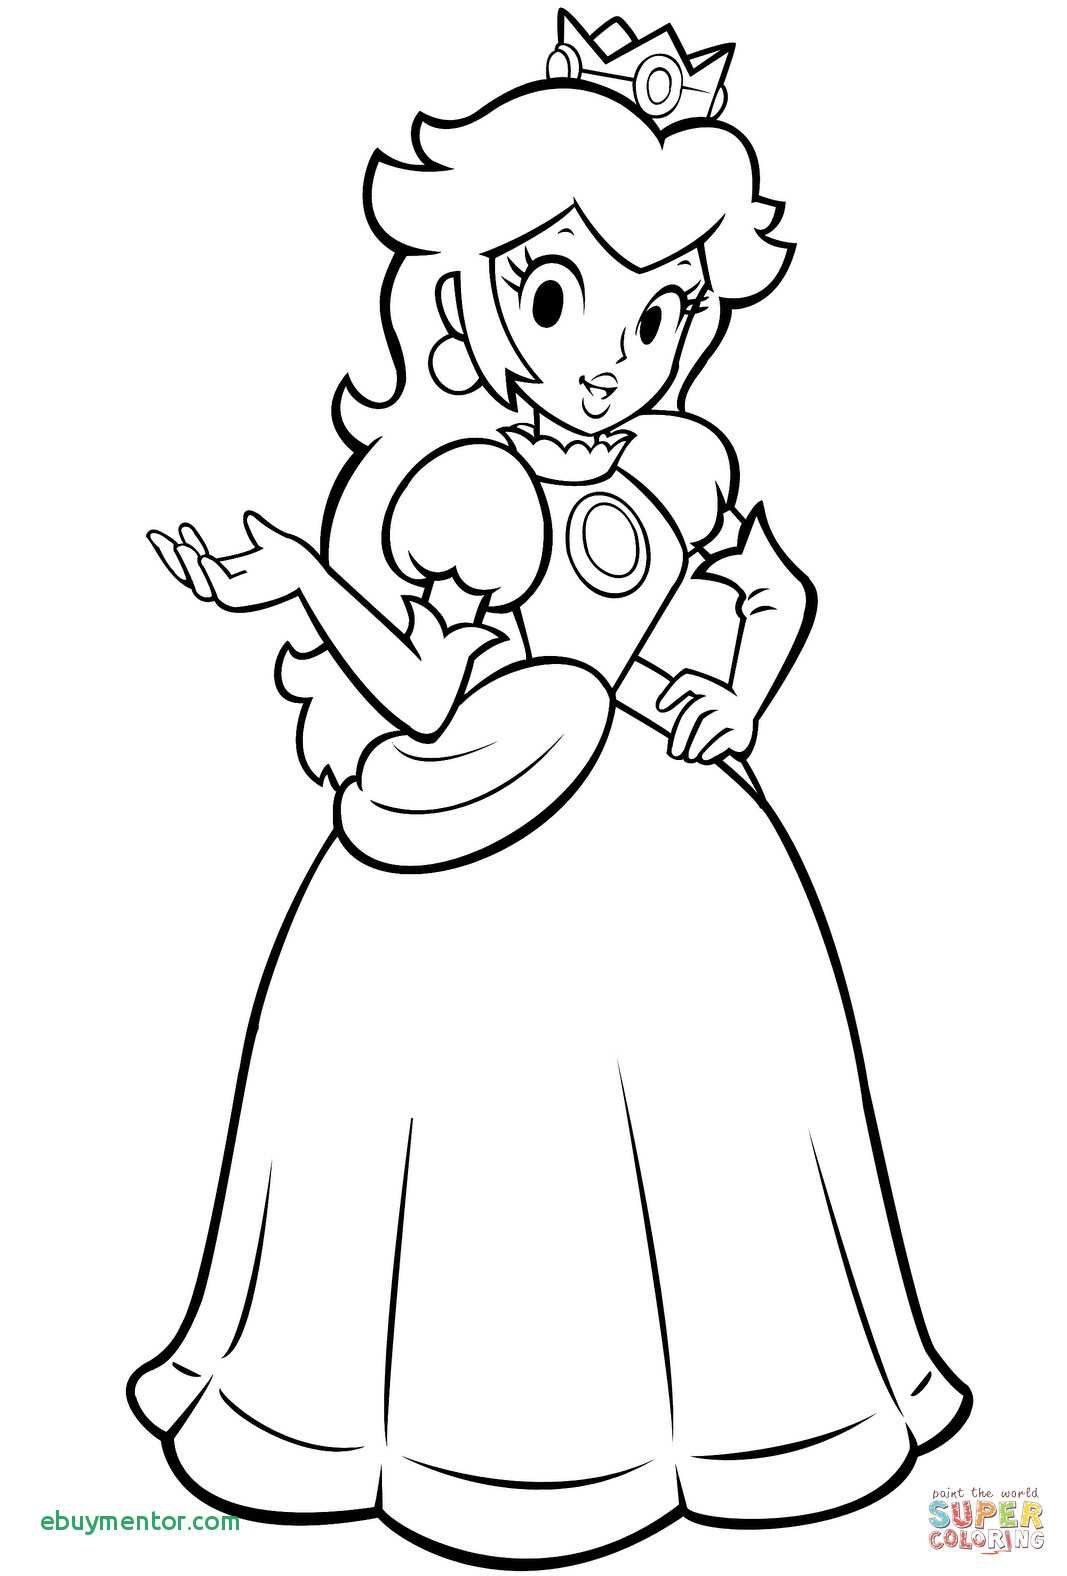 Mario Princess Coloring Pages Through The Thousand Pictures On The Internet About Mar Super Mario Coloring Pages Mario Coloring Pages Princess Coloring Pages